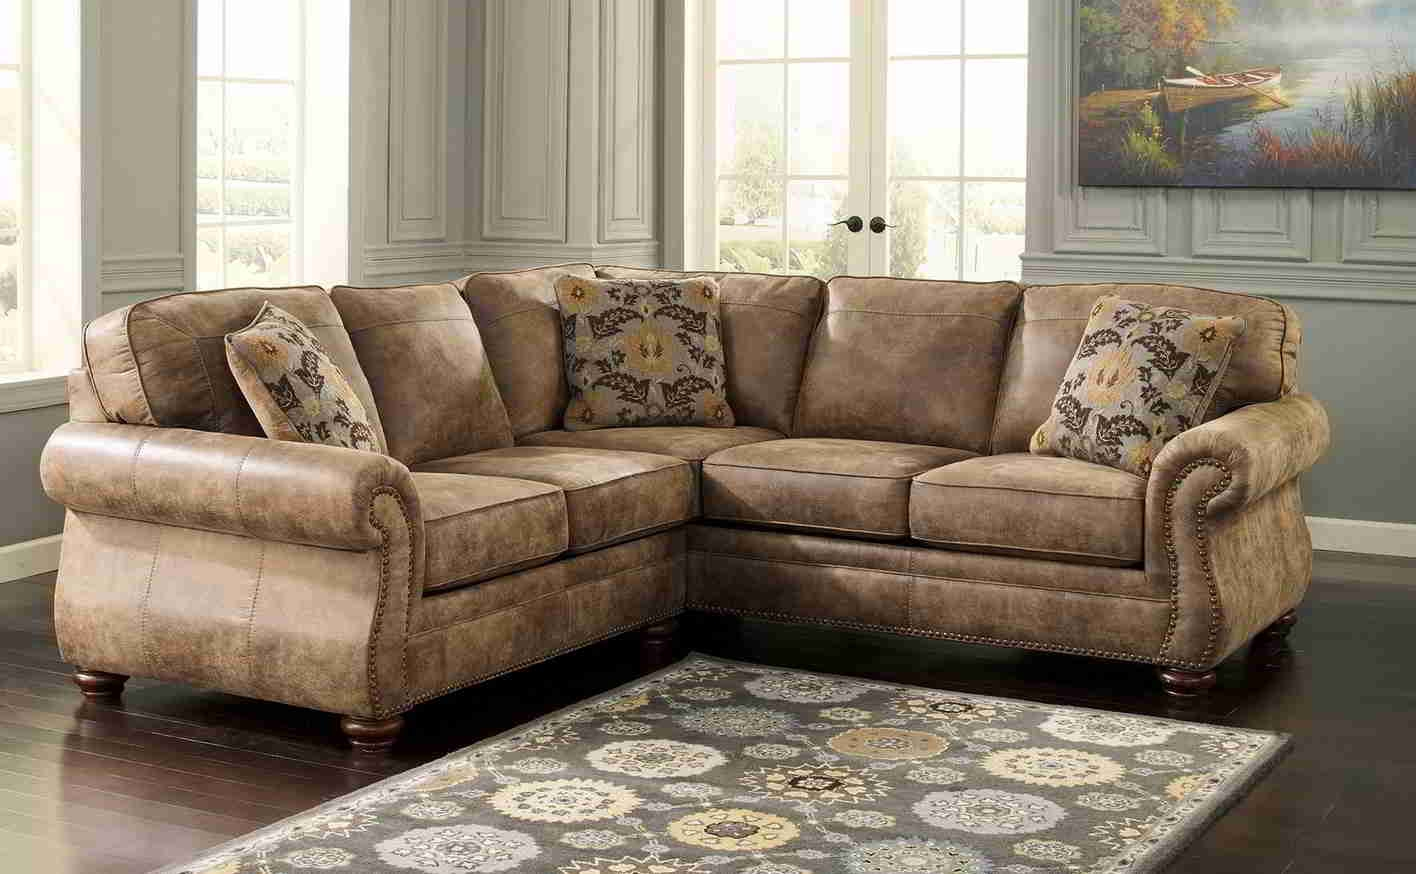 Inspiration about The Most Popular Custom Leather Sectional Sofa 87 With Additional With Diana Dark Brown Leather Sectional Sofa Set (#7 of 12)